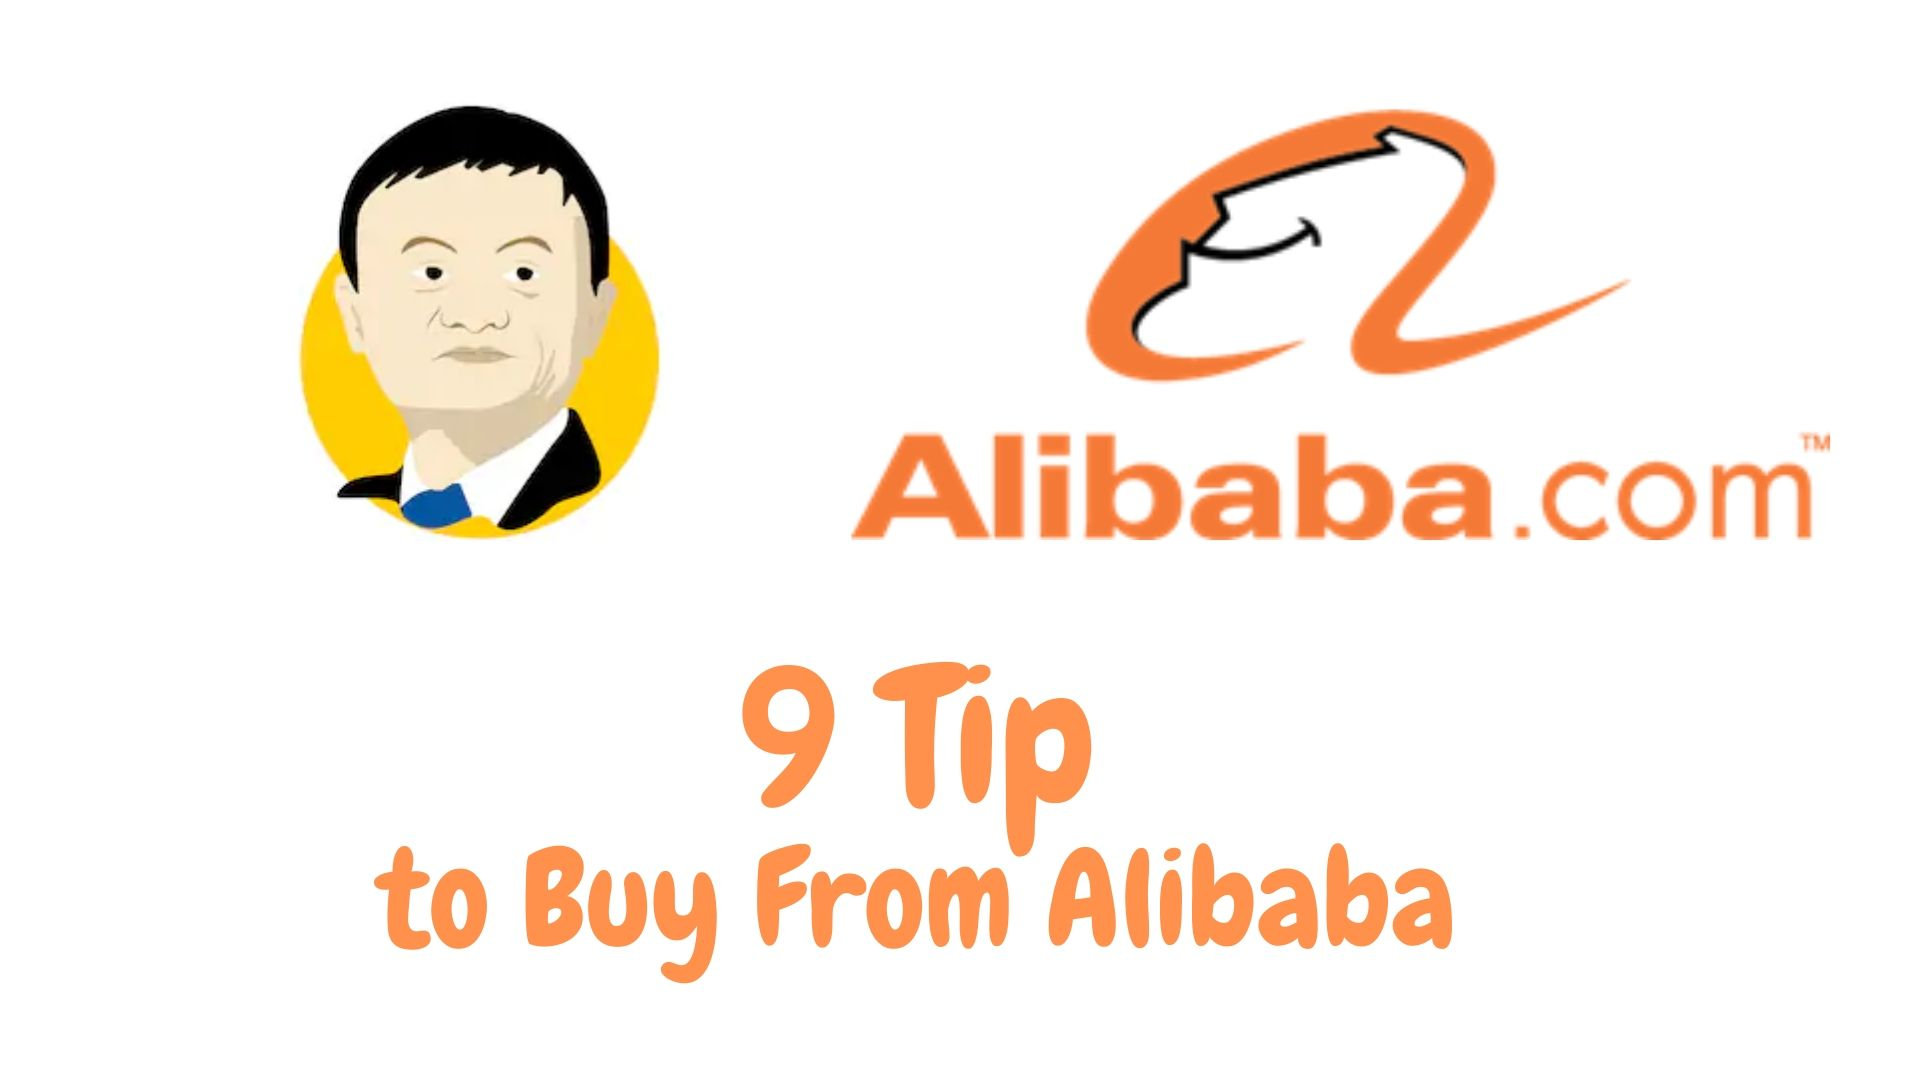 9 Tip to Buy From Alibaba